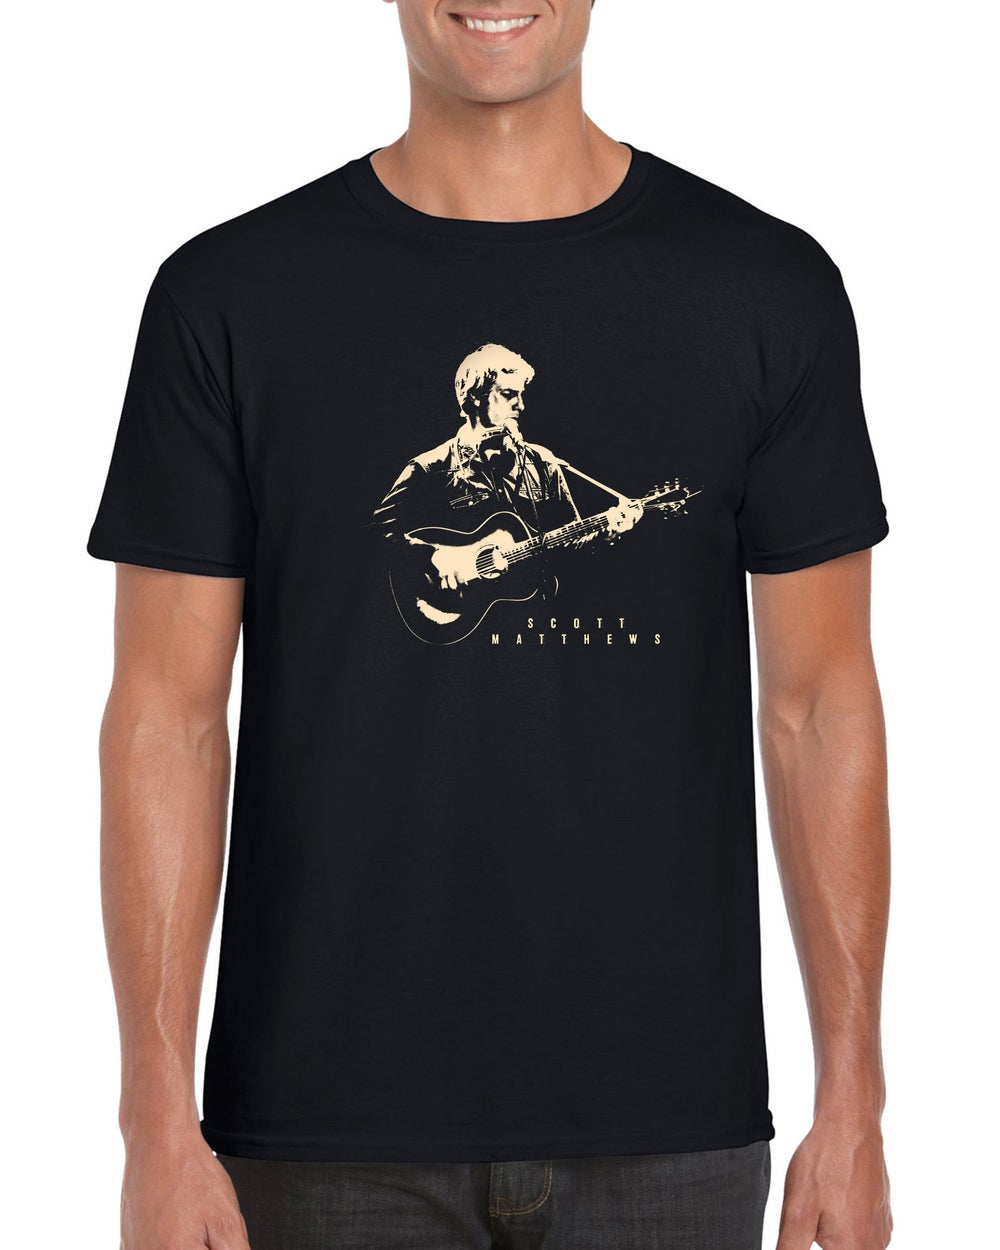 Image of Scott Matthews - Men's T-shirt